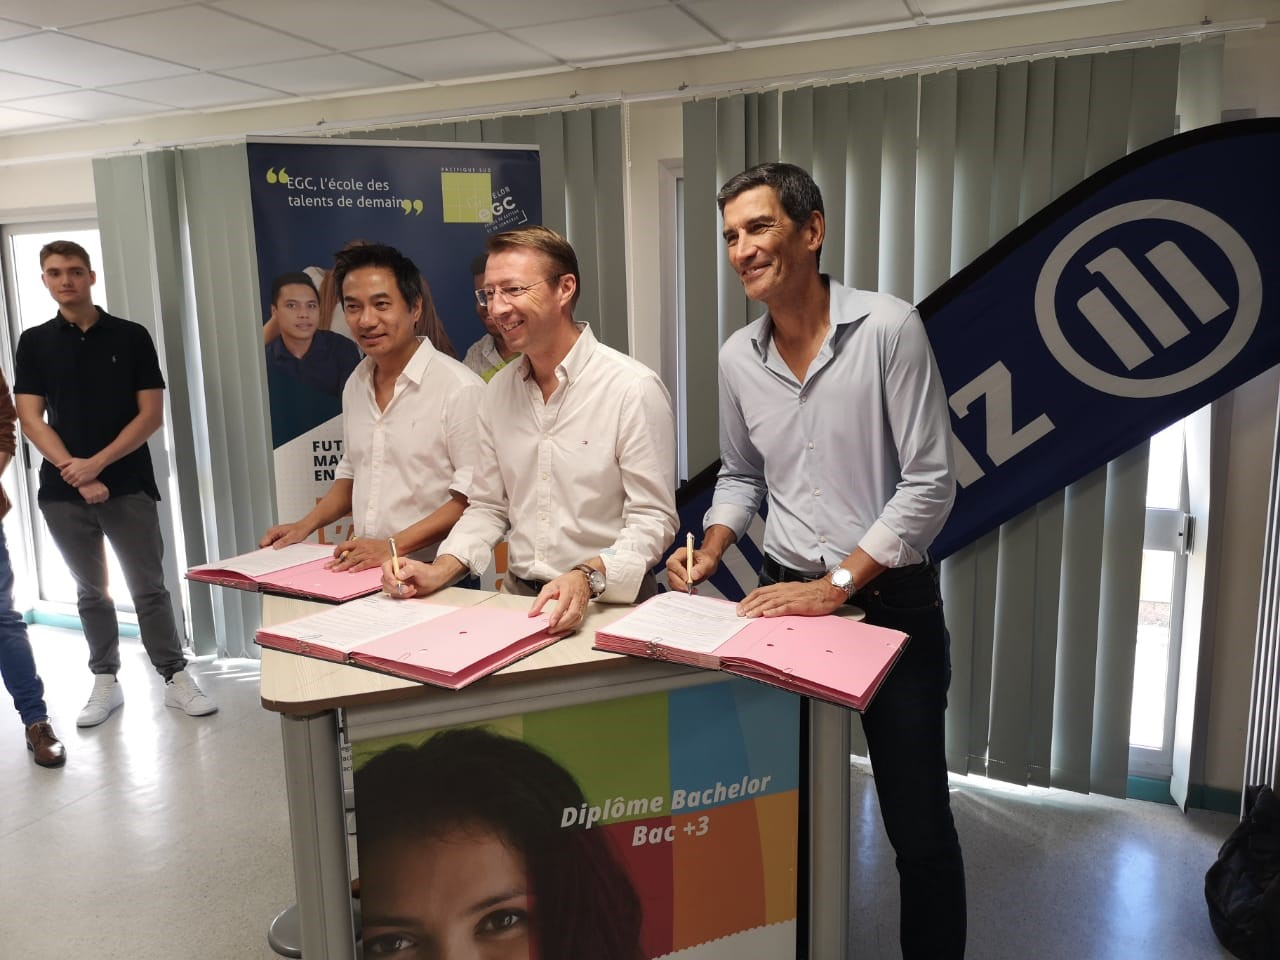 signature convention parainage Allianz-EGC